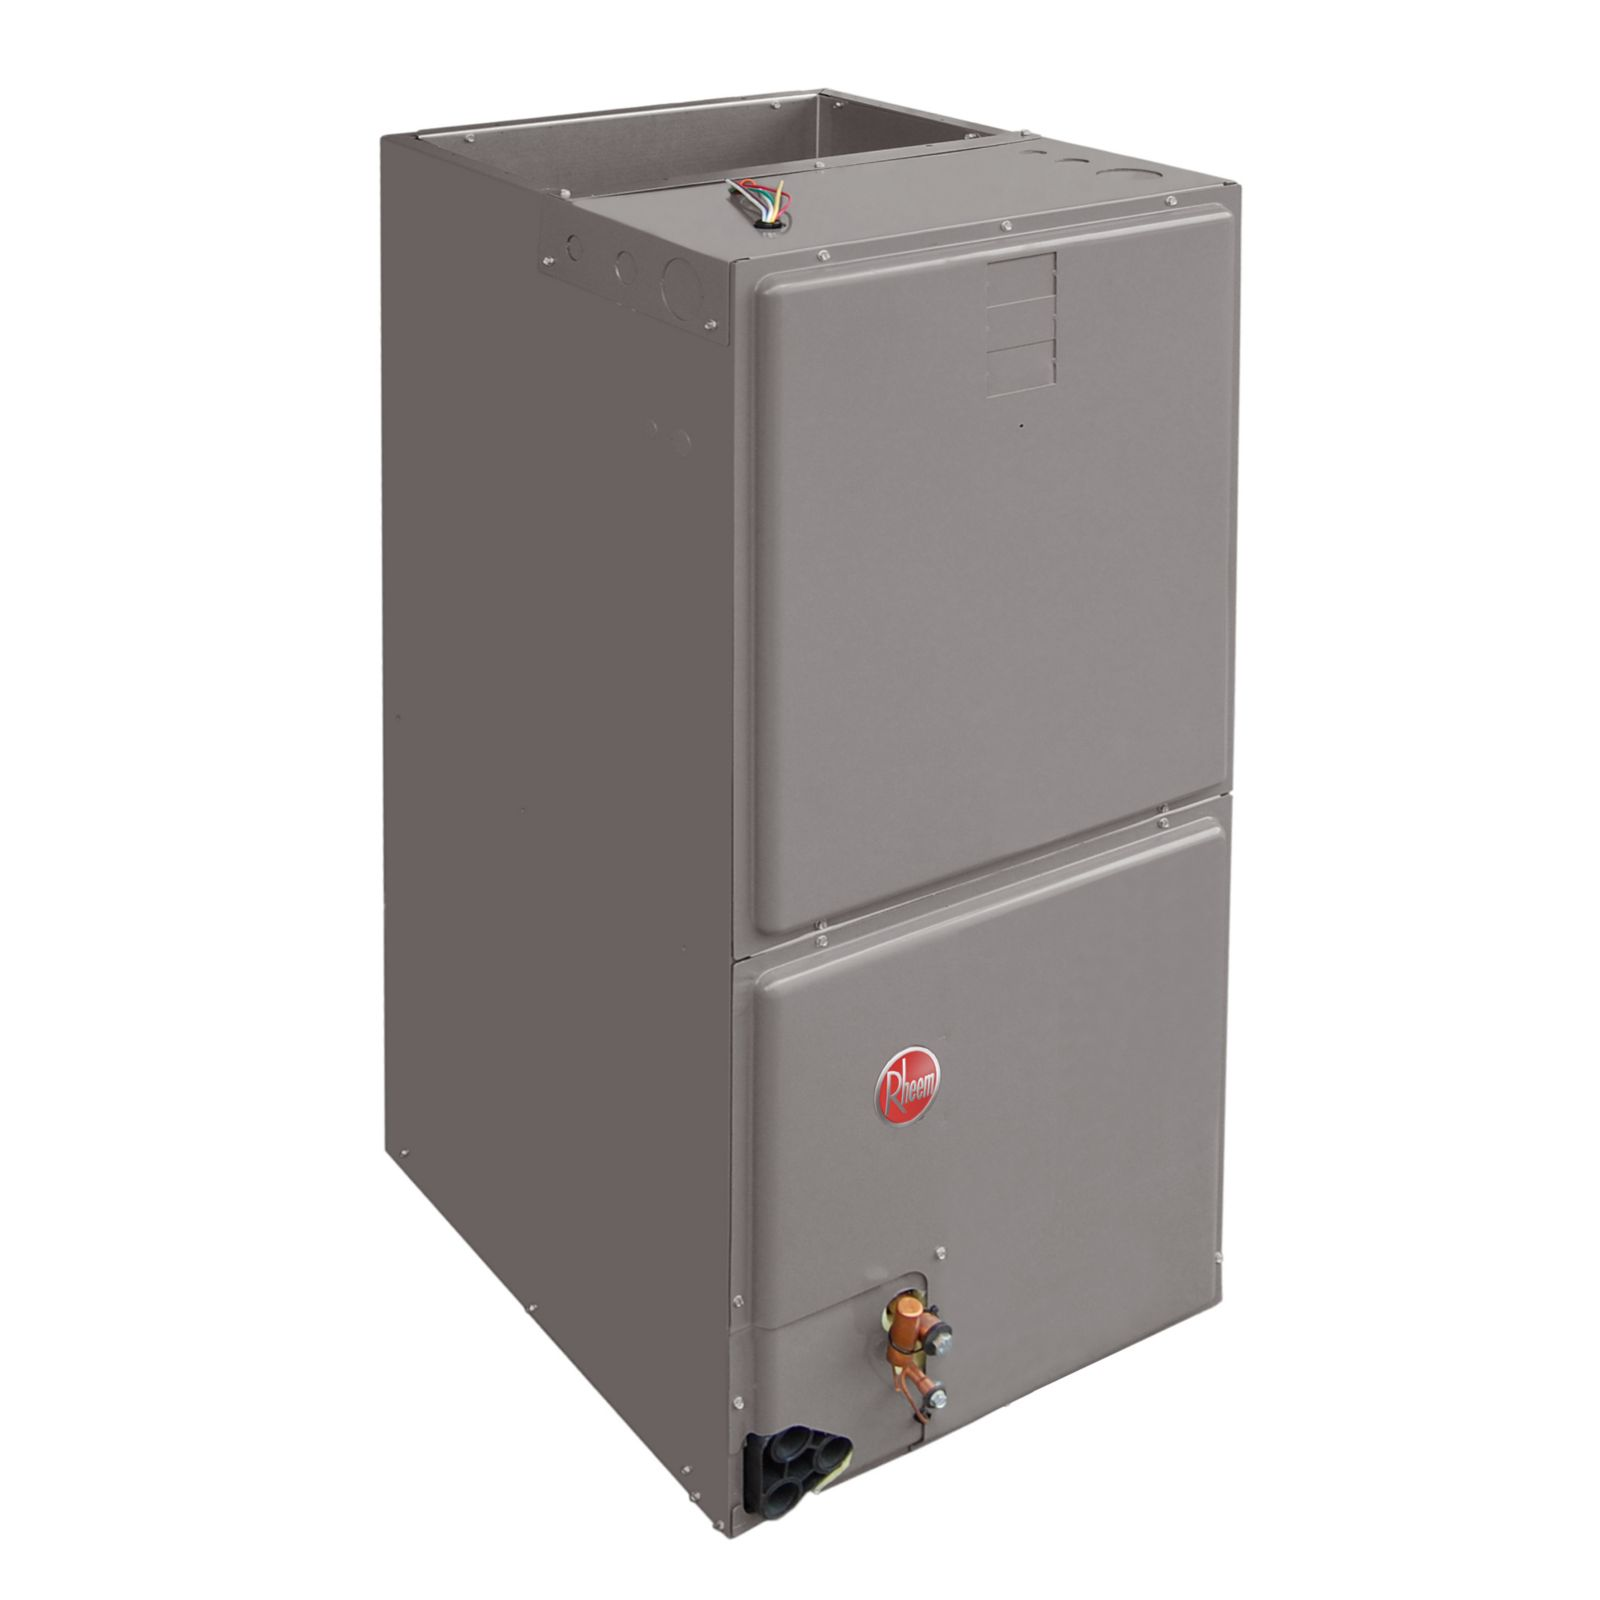 Rheem RH1V4824STANJA - RH1V - Series, 4 Ton, R-410A, Single Stage, Aluminum Air Handler, ECM Motor, 208/240V, 1 Ph, 60 Hz